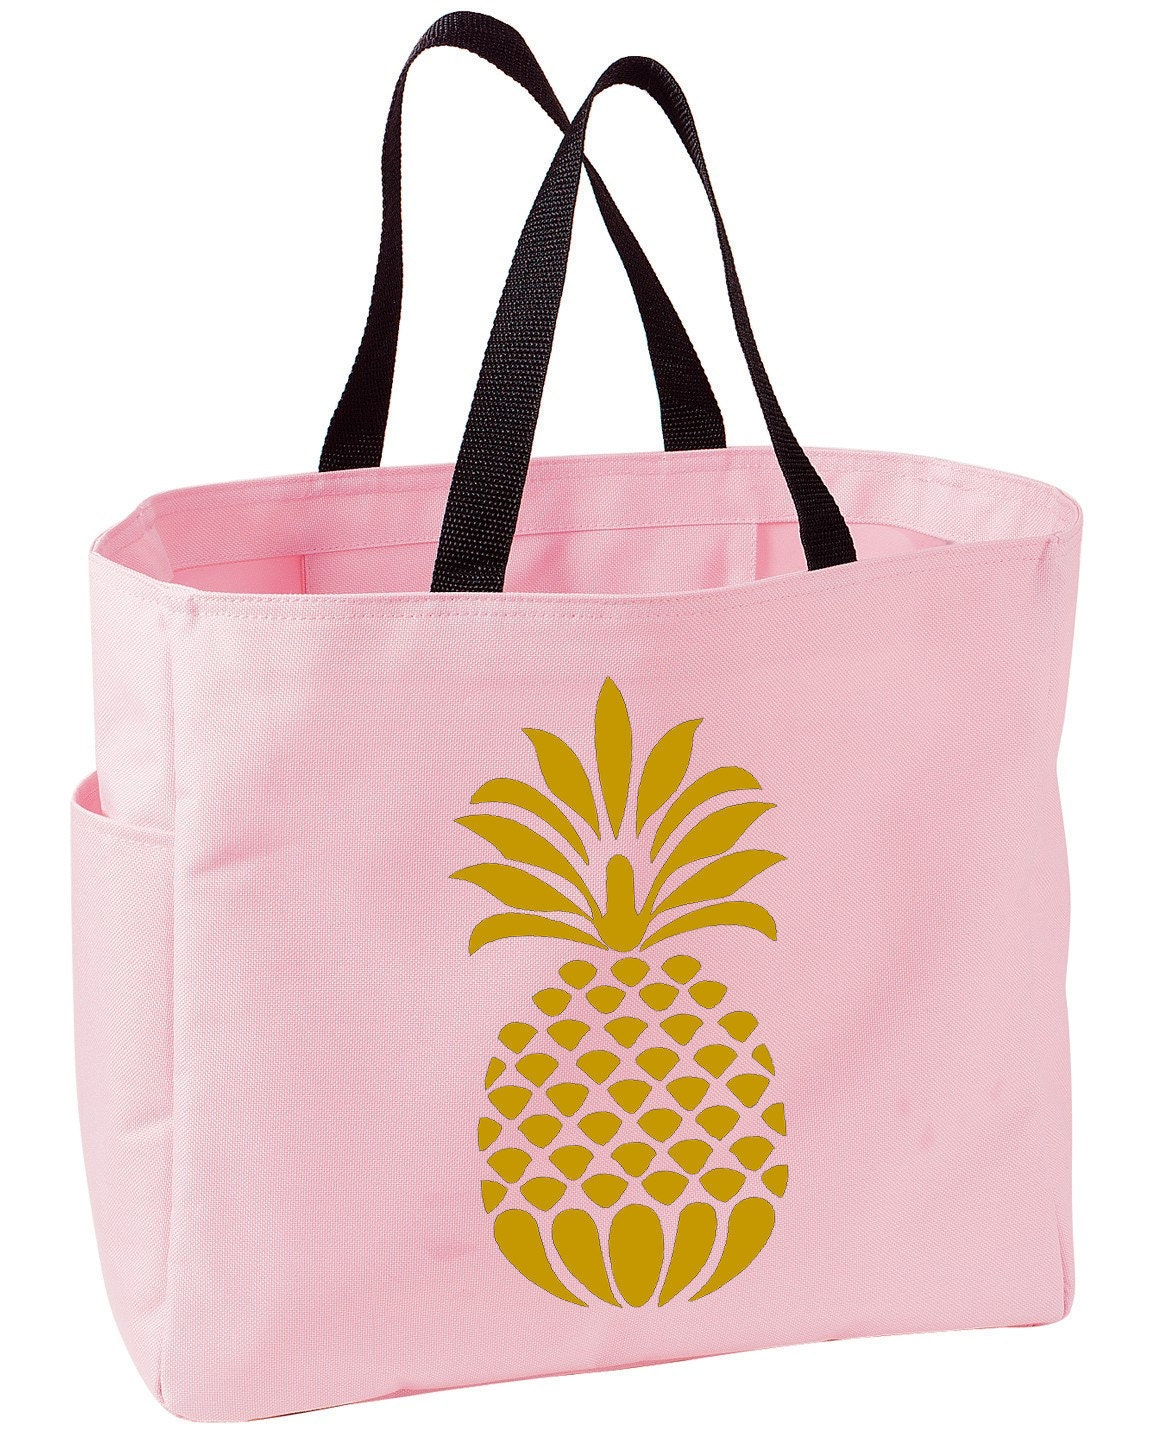 Pineapple custom iron on decal only for tote bag t shirt or for Personalized t shirt bags